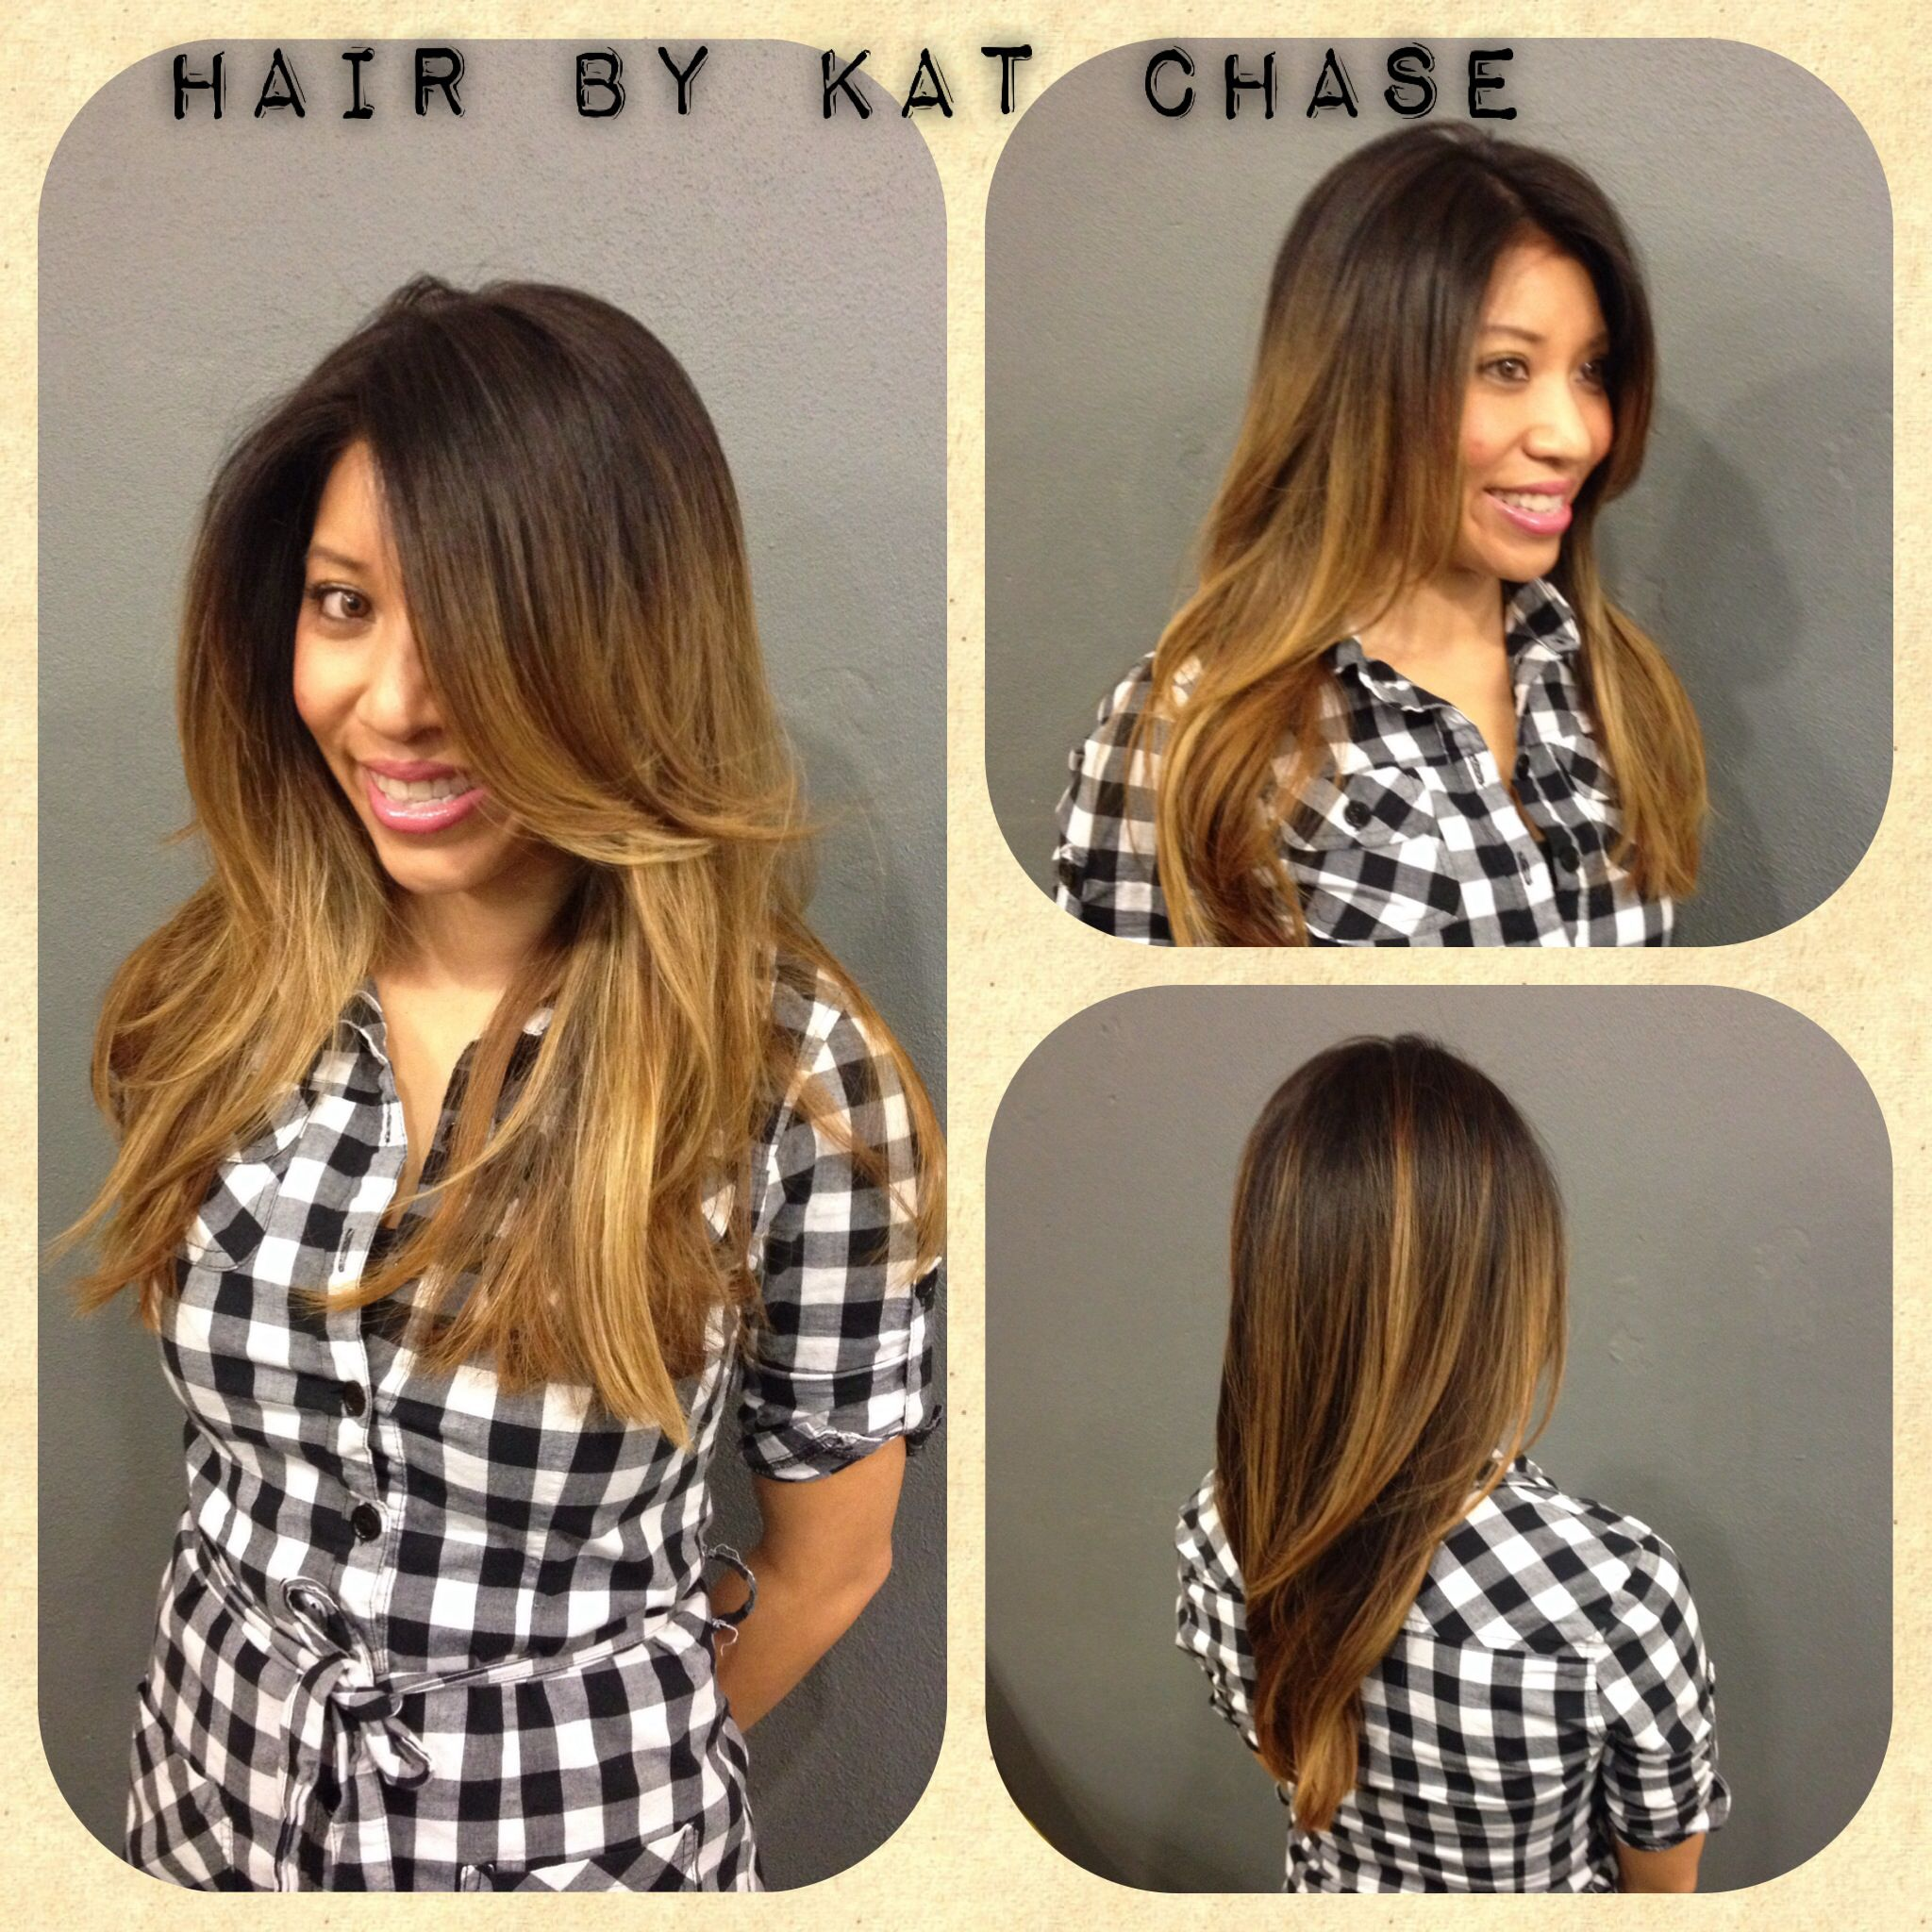 Brunette To Blonde Ombr Hair Hair By Kat Chase In Orlando Fl At